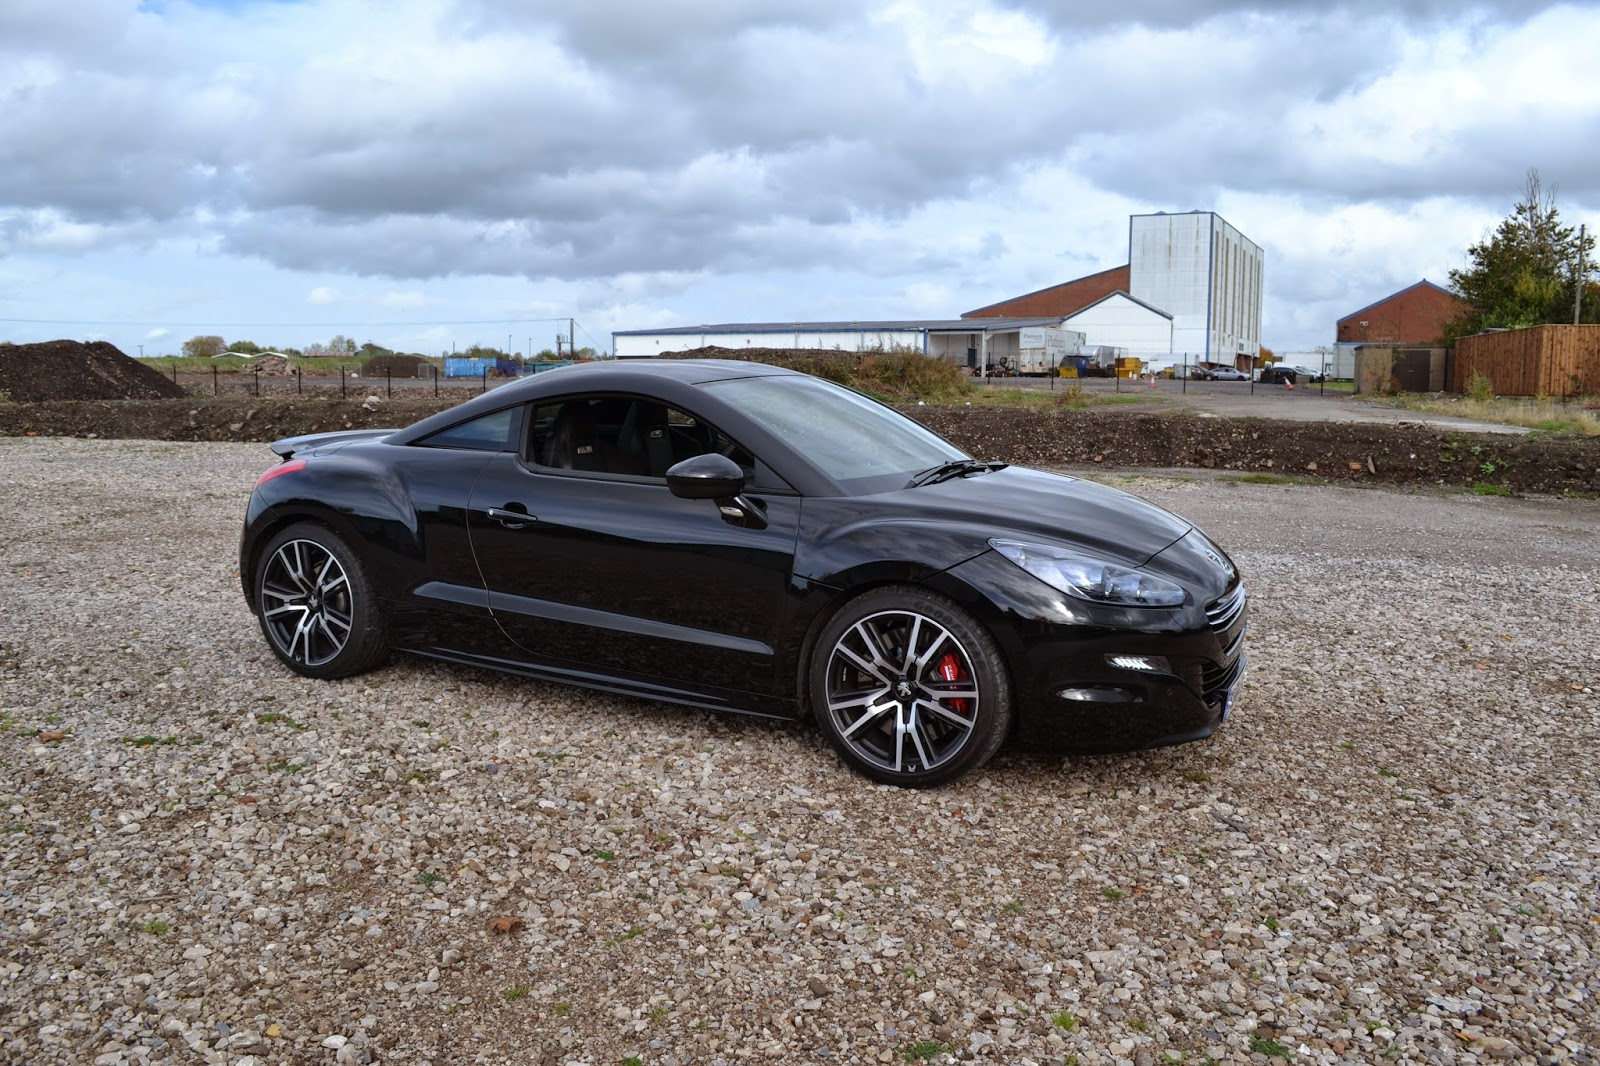 speedmonkey peugeot rcz r first drive review road trip. Black Bedroom Furniture Sets. Home Design Ideas